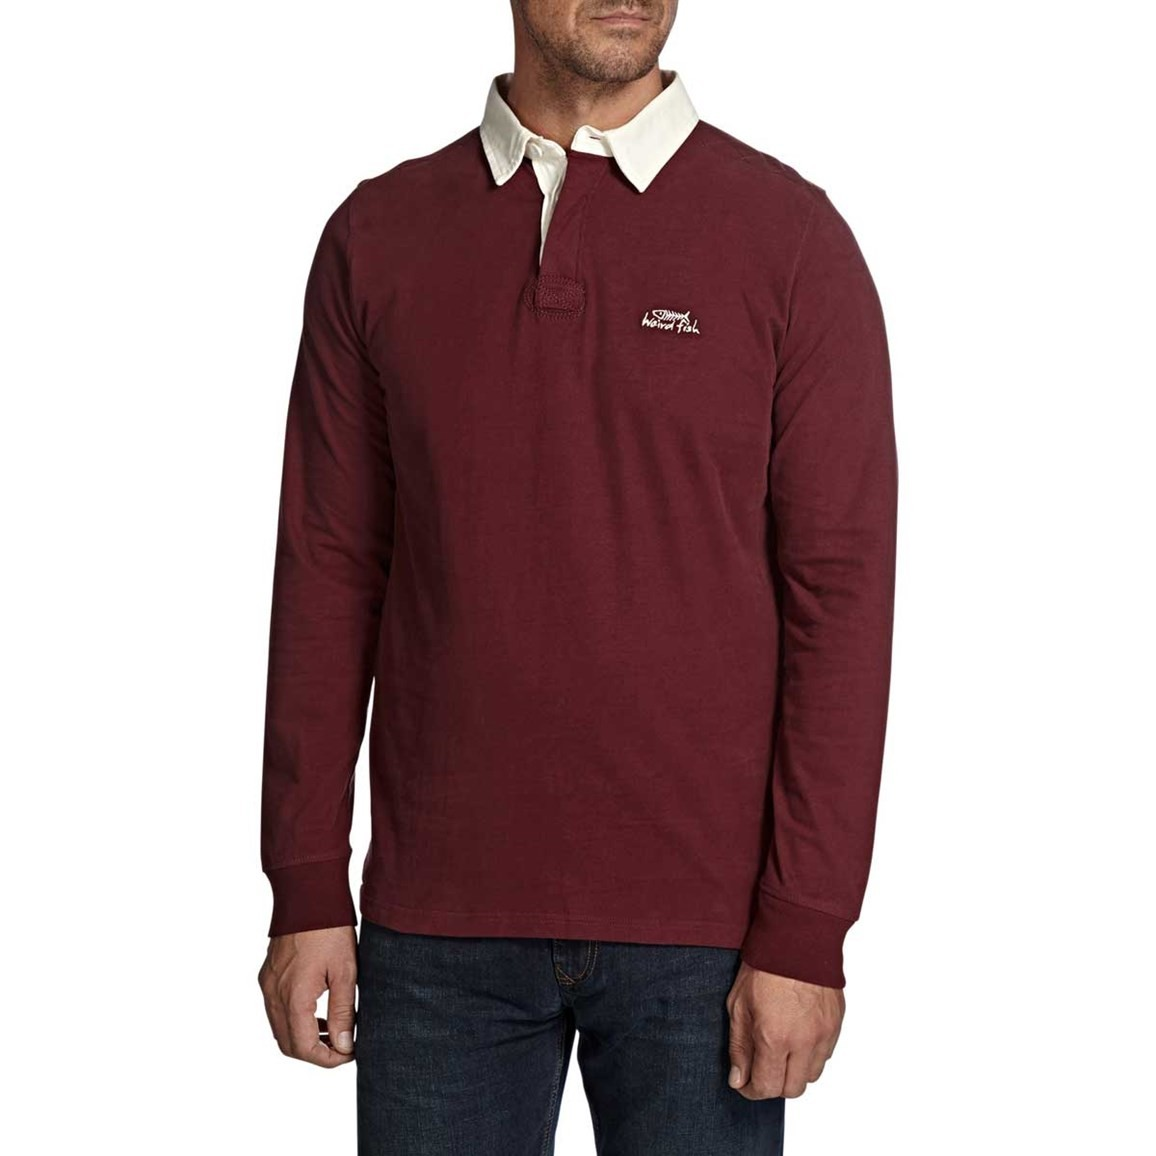 Lynton Cotton Sueded Rugby Style Sweatshirt Conker